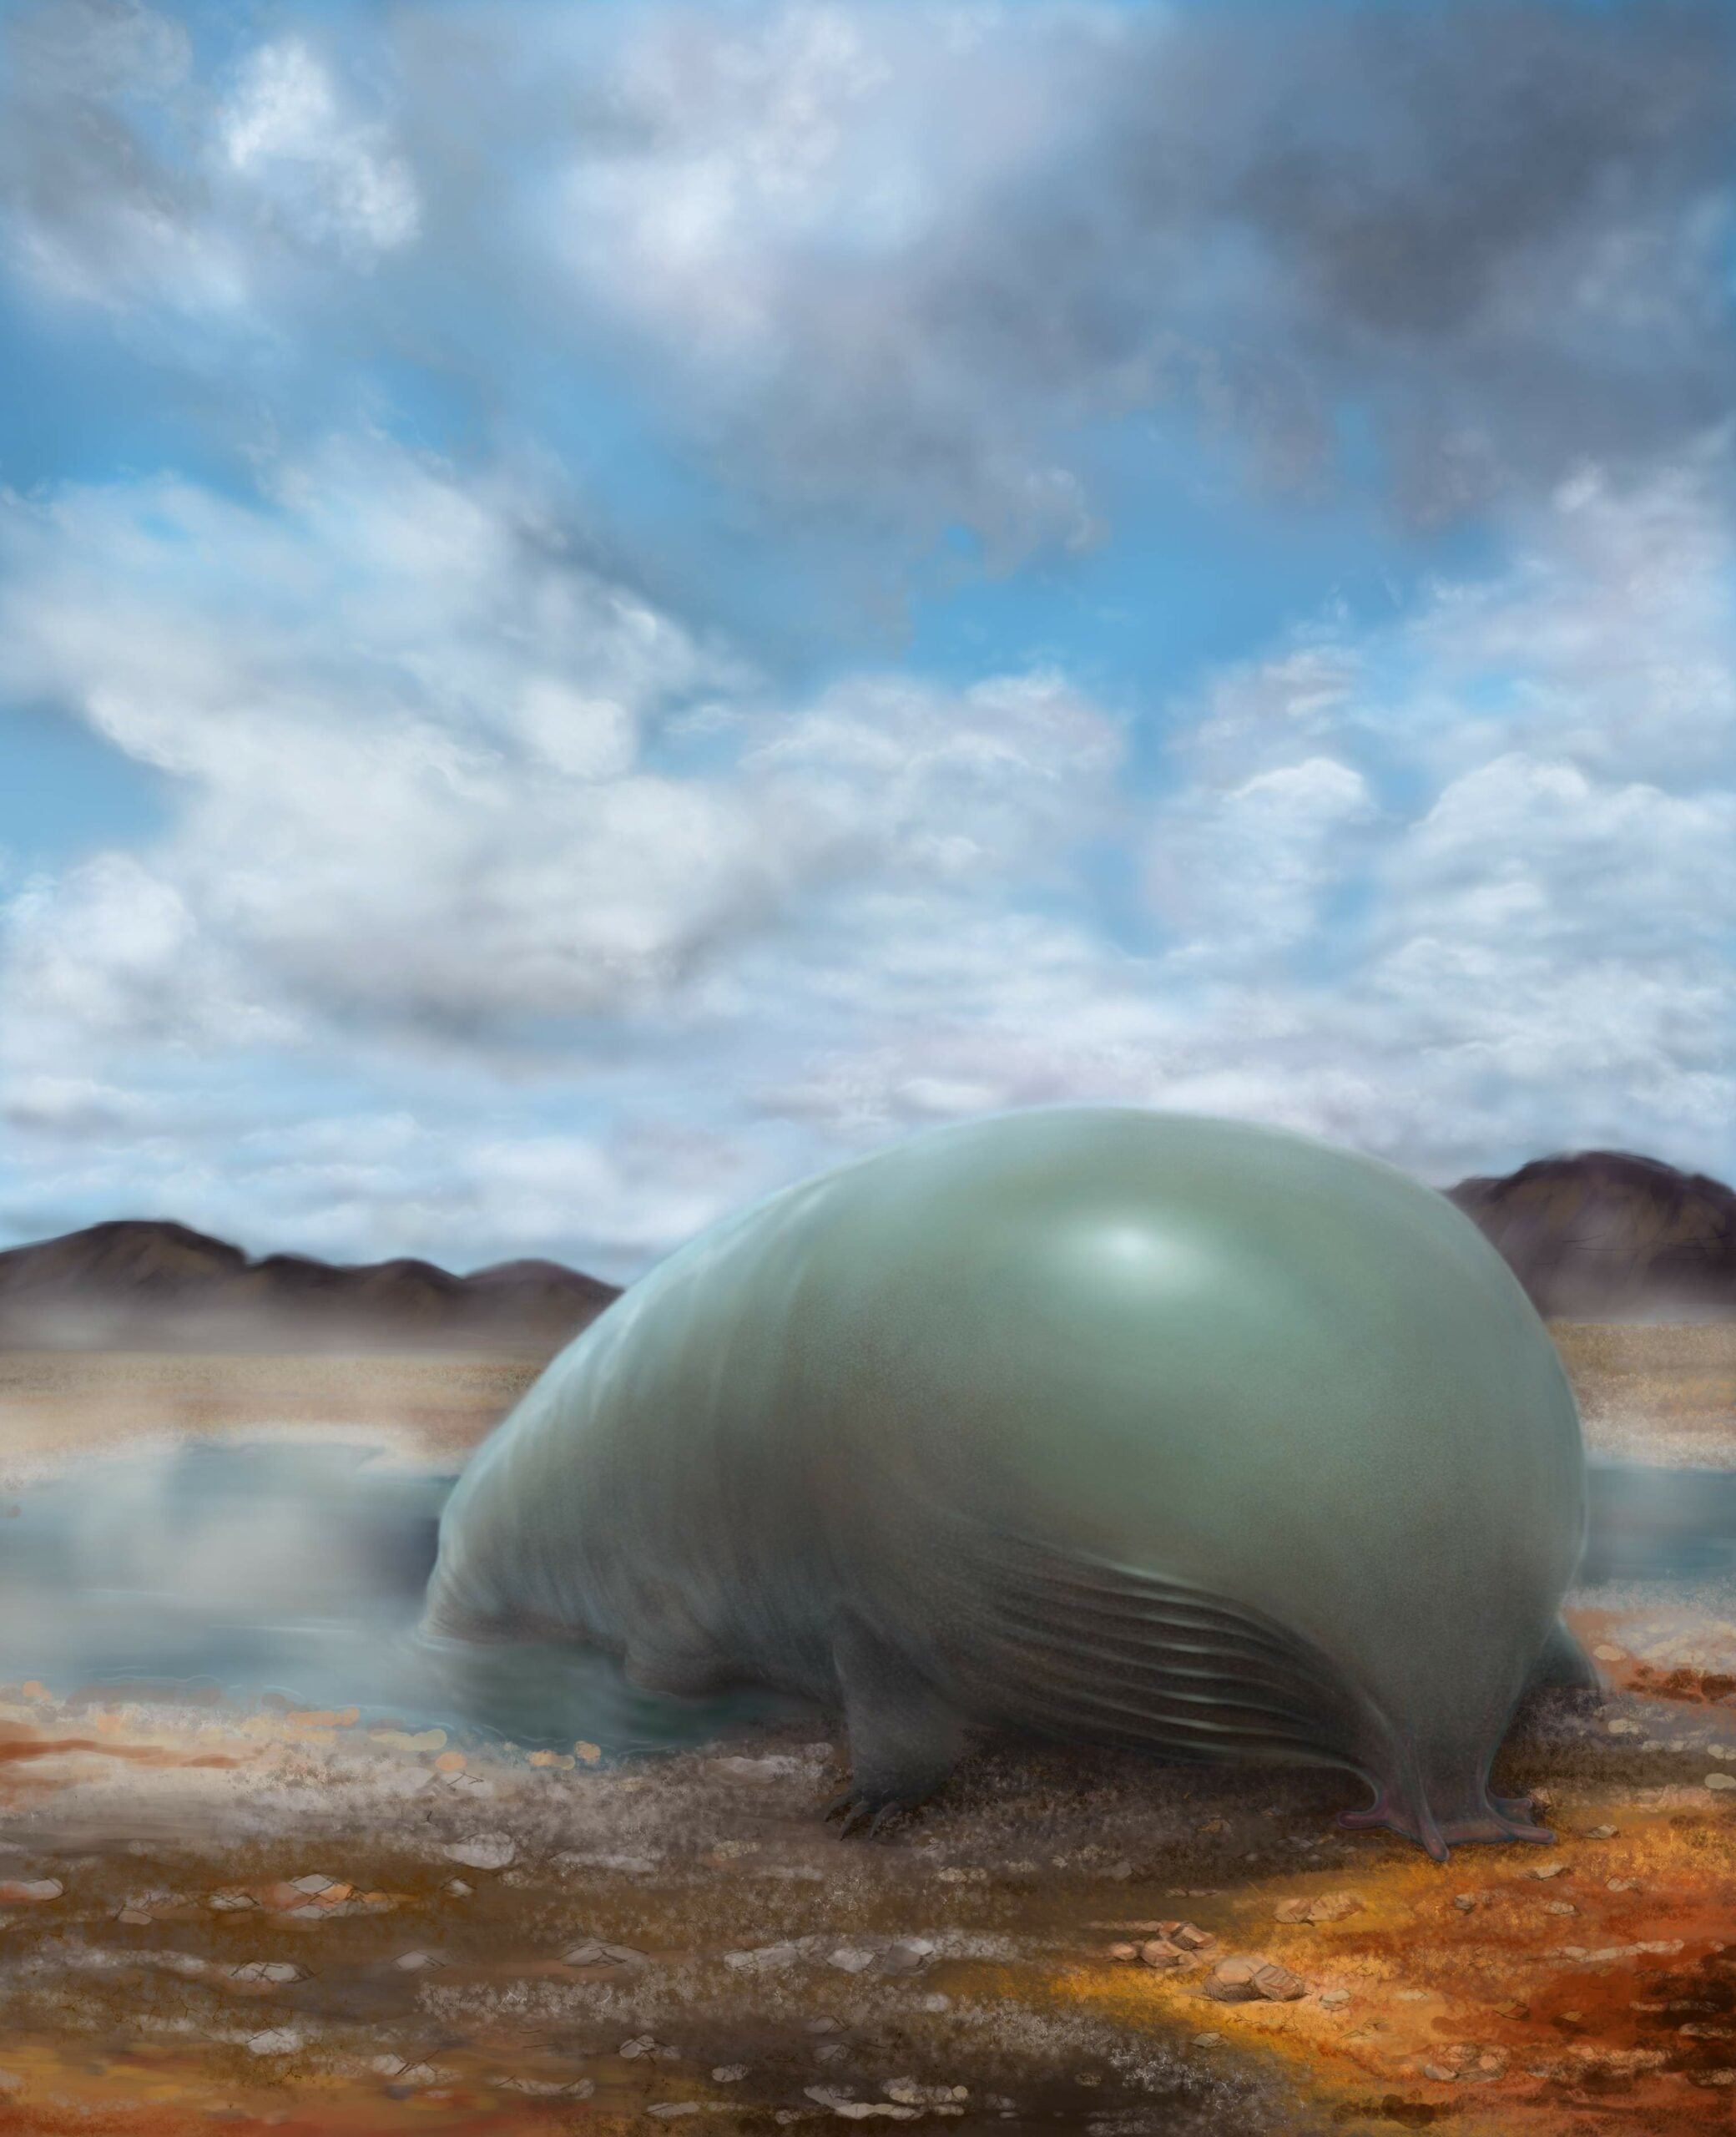 Looking for silicon-based alien life? Don't hold your breath.